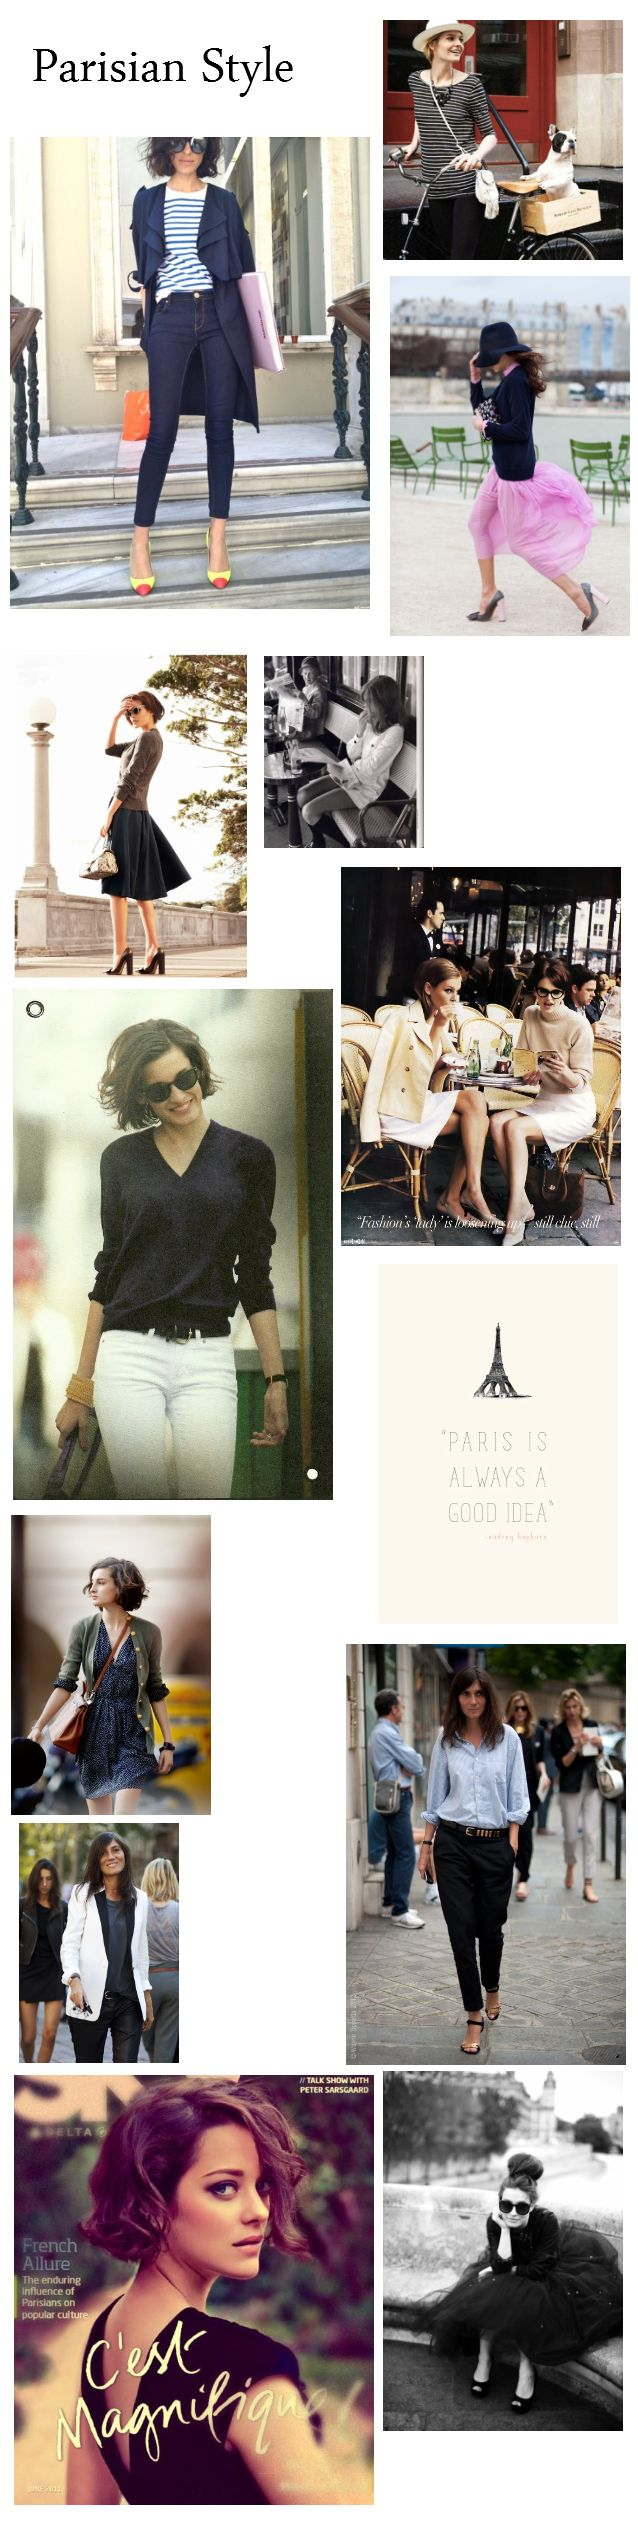 [INSPIRATION] Parisian Style | UK style and beauty blog for frugal fashionistas ¦ Sugar and Spice